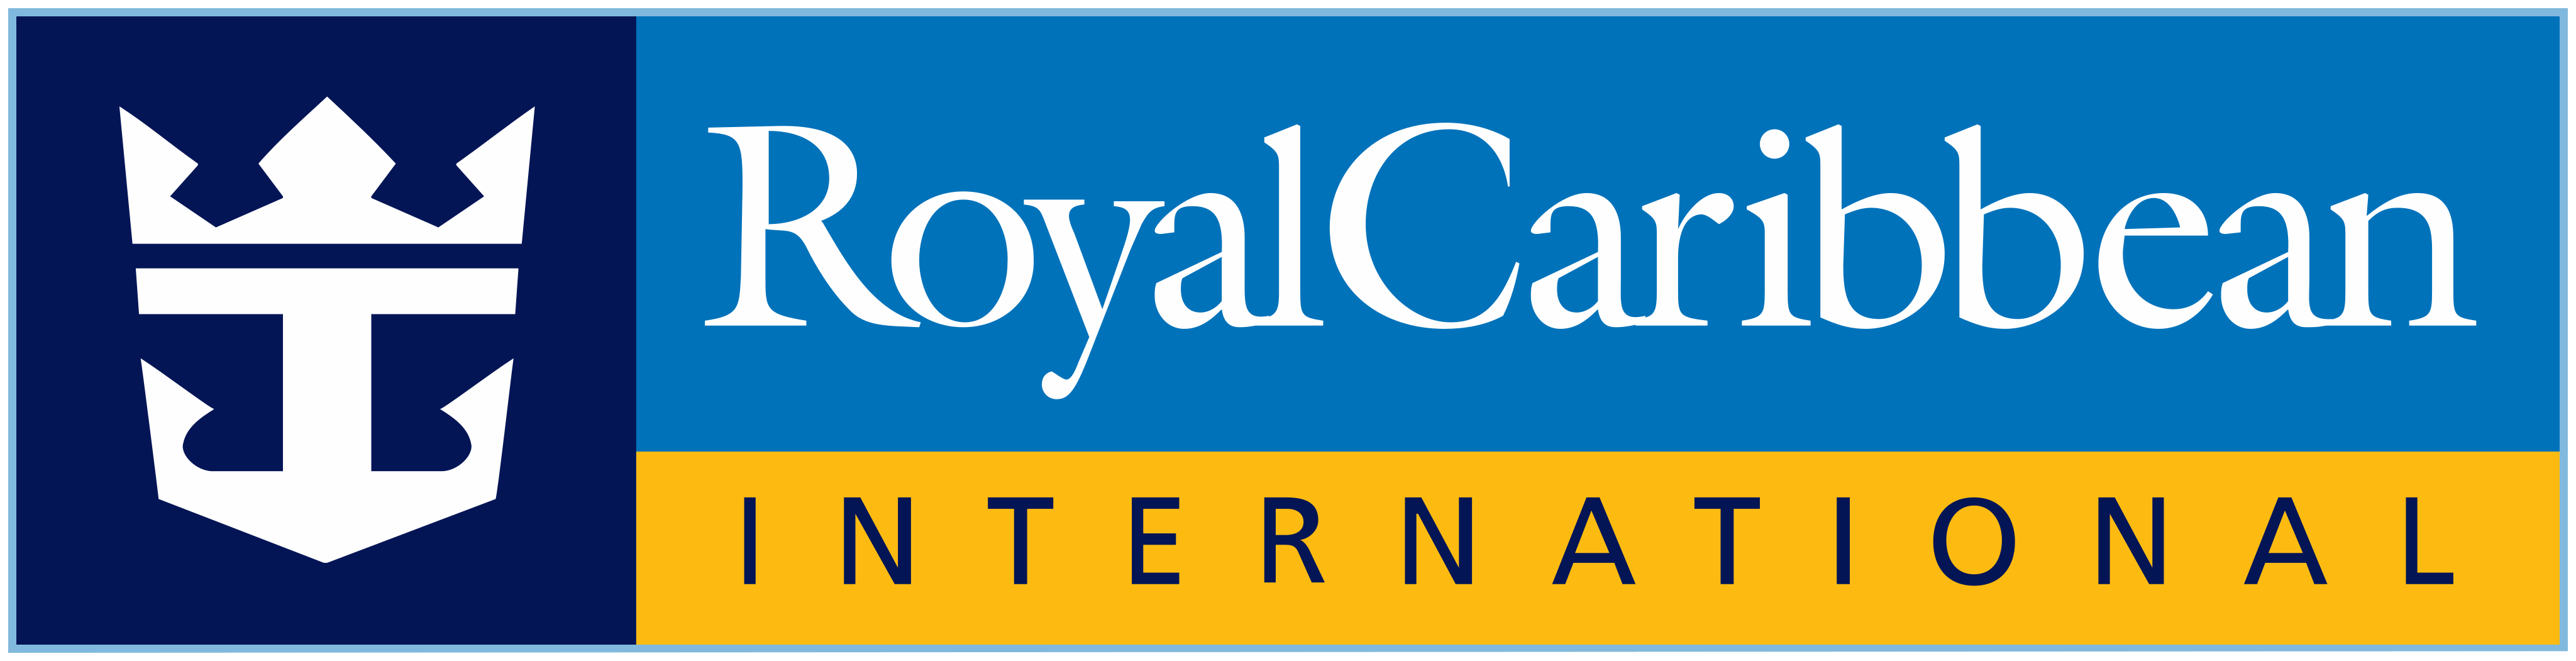 royal caribbean logo - Royal Caribbean Logo